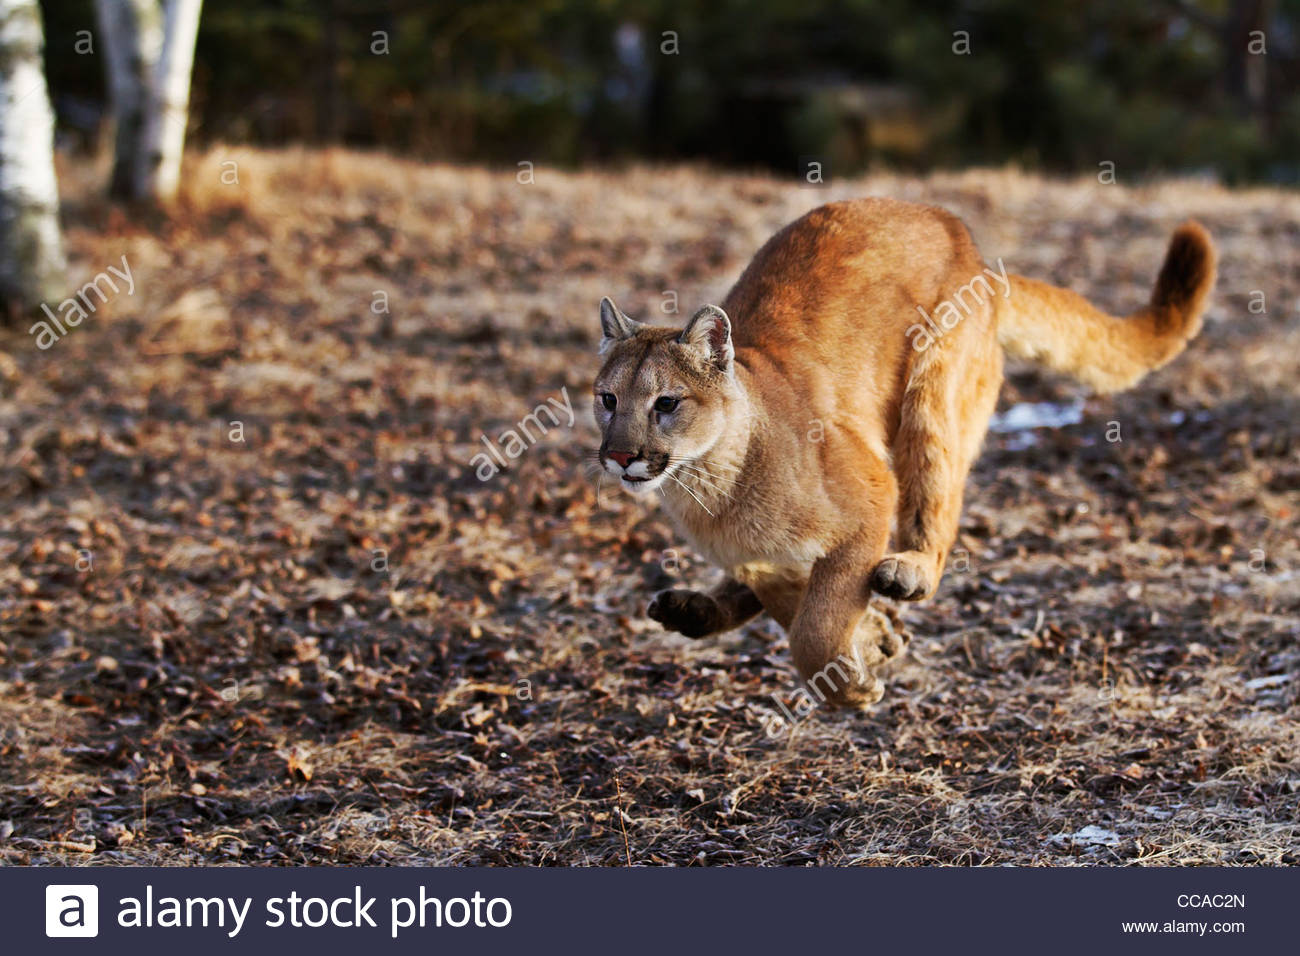 Mountain Lion (Felis concolor) also called a Cougar or Puma, adult female running .captive animal - Stock Image